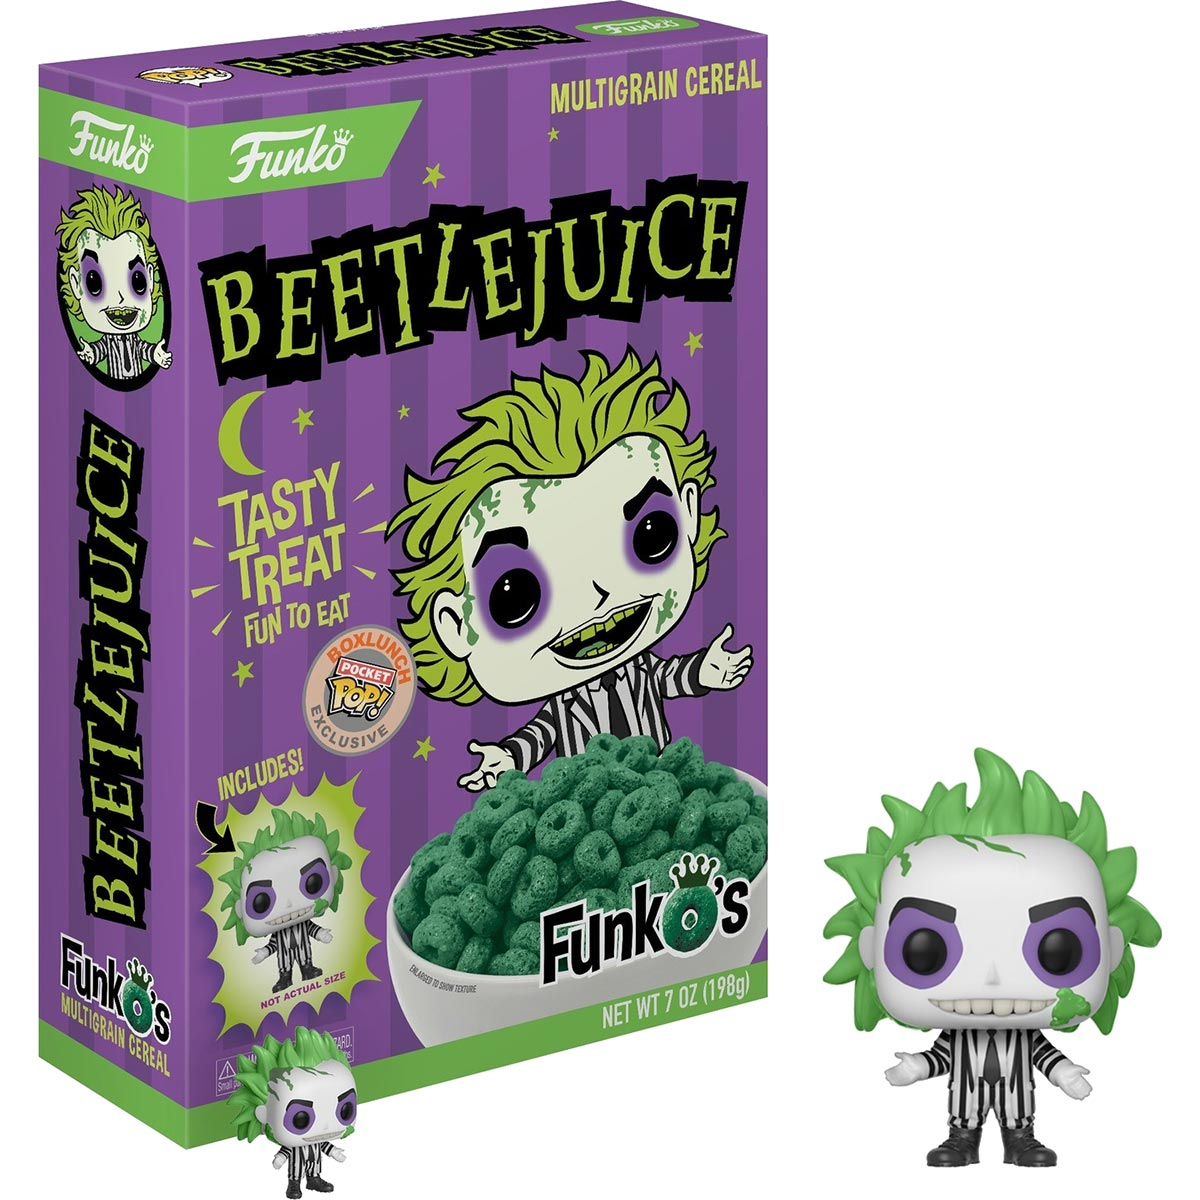 Funko's Cereal: Beetlejuice